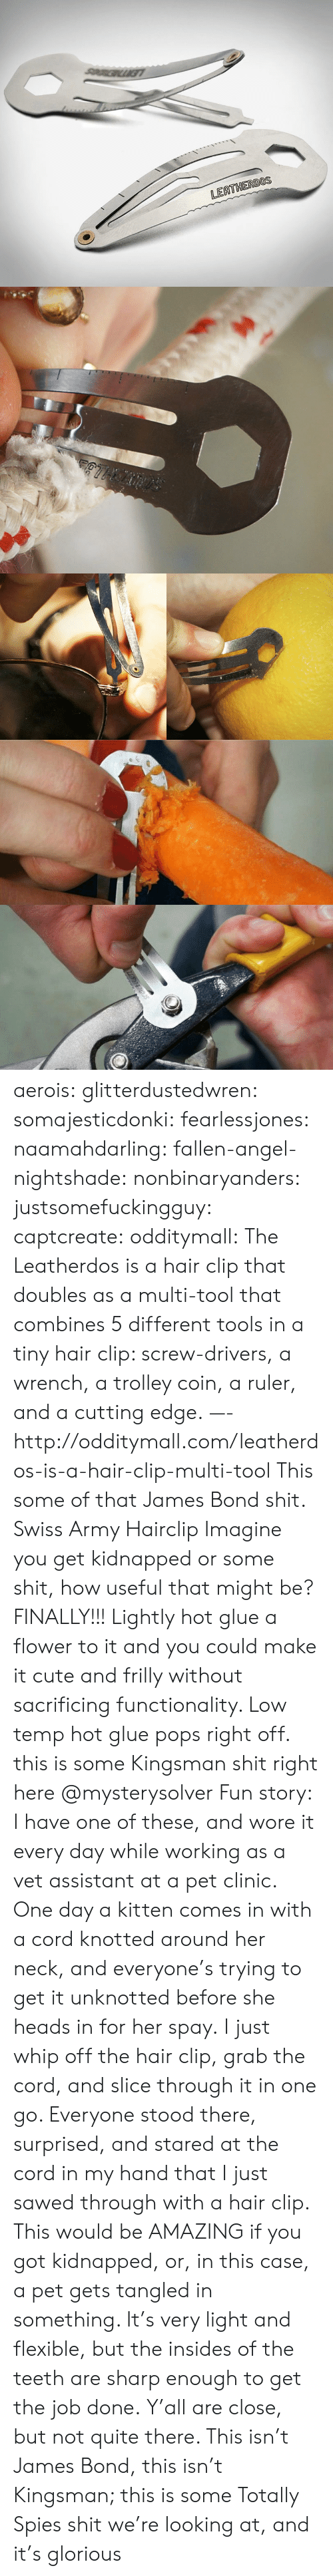 Tool That: LEATHERDOS aerois:  glitterdustedwren:  somajesticdonki:  fearlessjones:  naamahdarling:  fallen-angel-nightshade:  nonbinaryanders:  justsomefuckingguy:  captcreate:  odditymall:  The Leatherdos is a hair clip that doubles as a multi-tool that combines 5 different tools in a tiny hair clip: screw-drivers, a wrench, a trolley coin, a ruler, and a cutting edge. —-http://odditymall.com/leatherdos-is-a-hair-clip-multi-tool  This some of that James Bond shit.  Swiss Army Hairclip  Imagine you get kidnapped or some shit, how useful that might be?  FINALLY!!!   Lightly hot glue a flower to it and you could make it cute and frilly without sacrificing functionality. Low temp hot glue pops right off.   this is some Kingsman shit right here   @mysterysolver  Fun story: I have one of these, and wore it every day while working as a vet assistant at a pet clinic. One day a kitten comes in with a cord knotted around her neck, and everyone's trying to get it unknotted before she heads in for her spay. I just whip off the hair clip, grab the cord, and slice through it in one go. Everyone stood there, surprised, and stared at the cord in my hand that I just sawed through with a hair clip.  This would be AMAZING if you got kidnapped, or, in this case, a pet gets tangled in something. It's very light and flexible, but the insides of the teeth are sharp enough to get the job done.  Y'all are close, but not quite there. This isn't James Bond, this isn't Kingsman; this is some Totally Spies shit we're looking at, and it's glorious